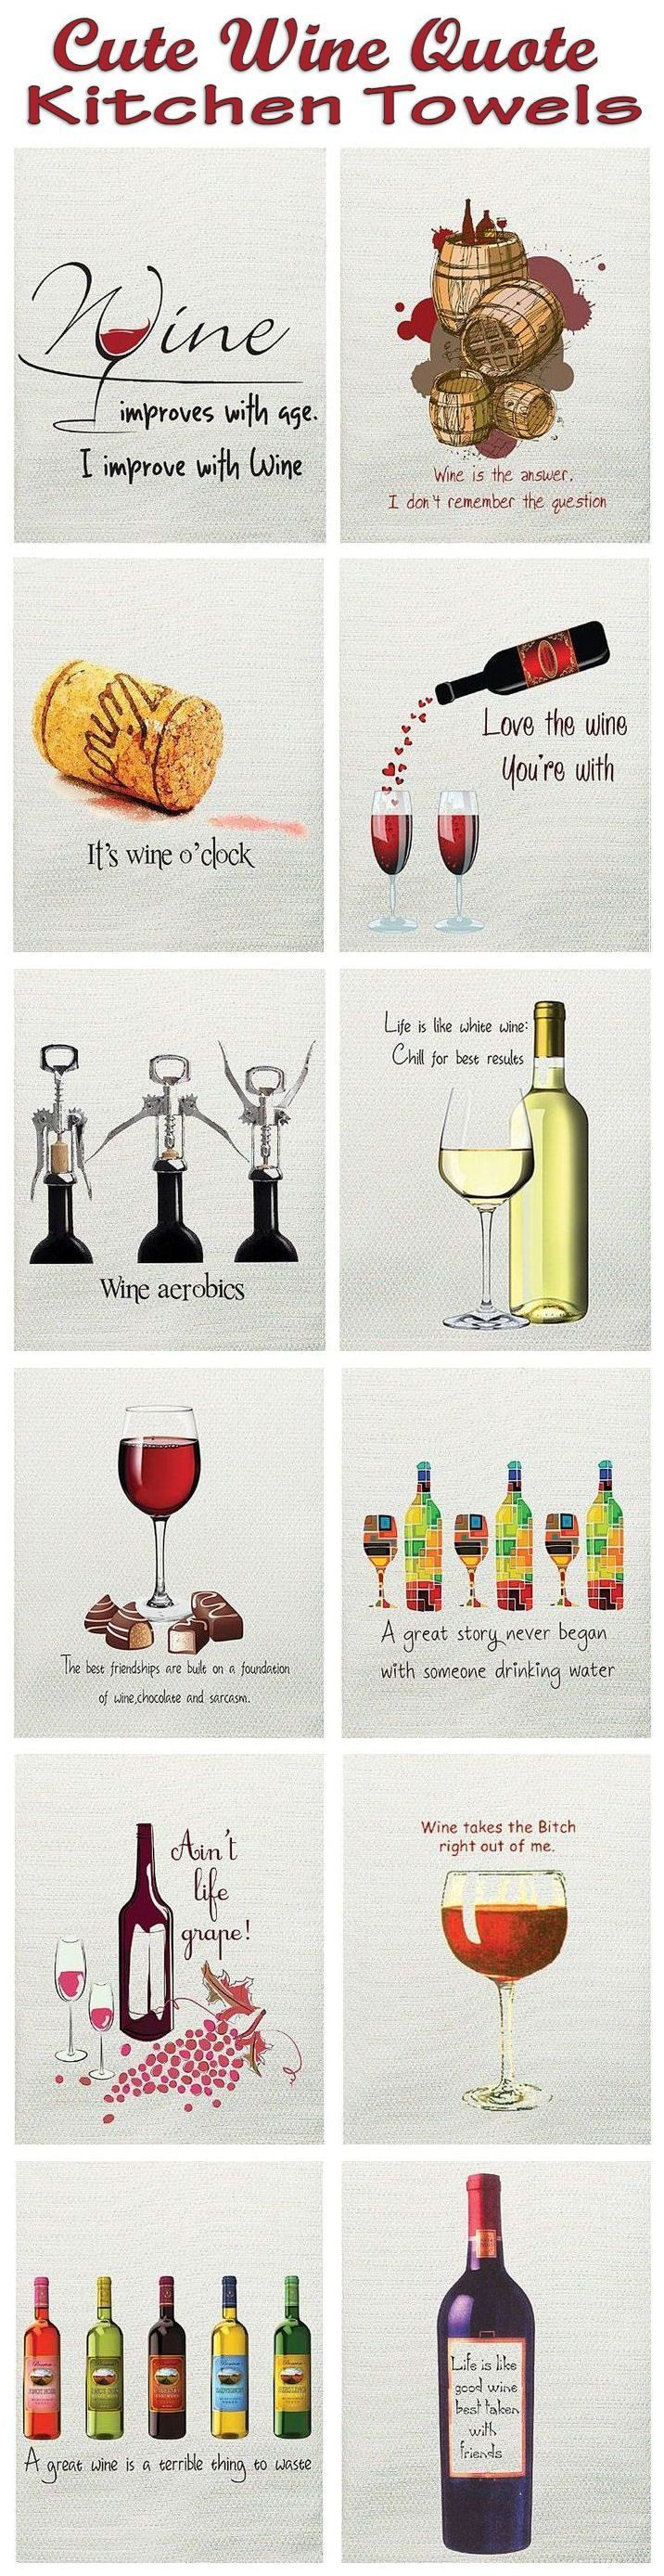 Cute Wine Quote Kitchen Towels